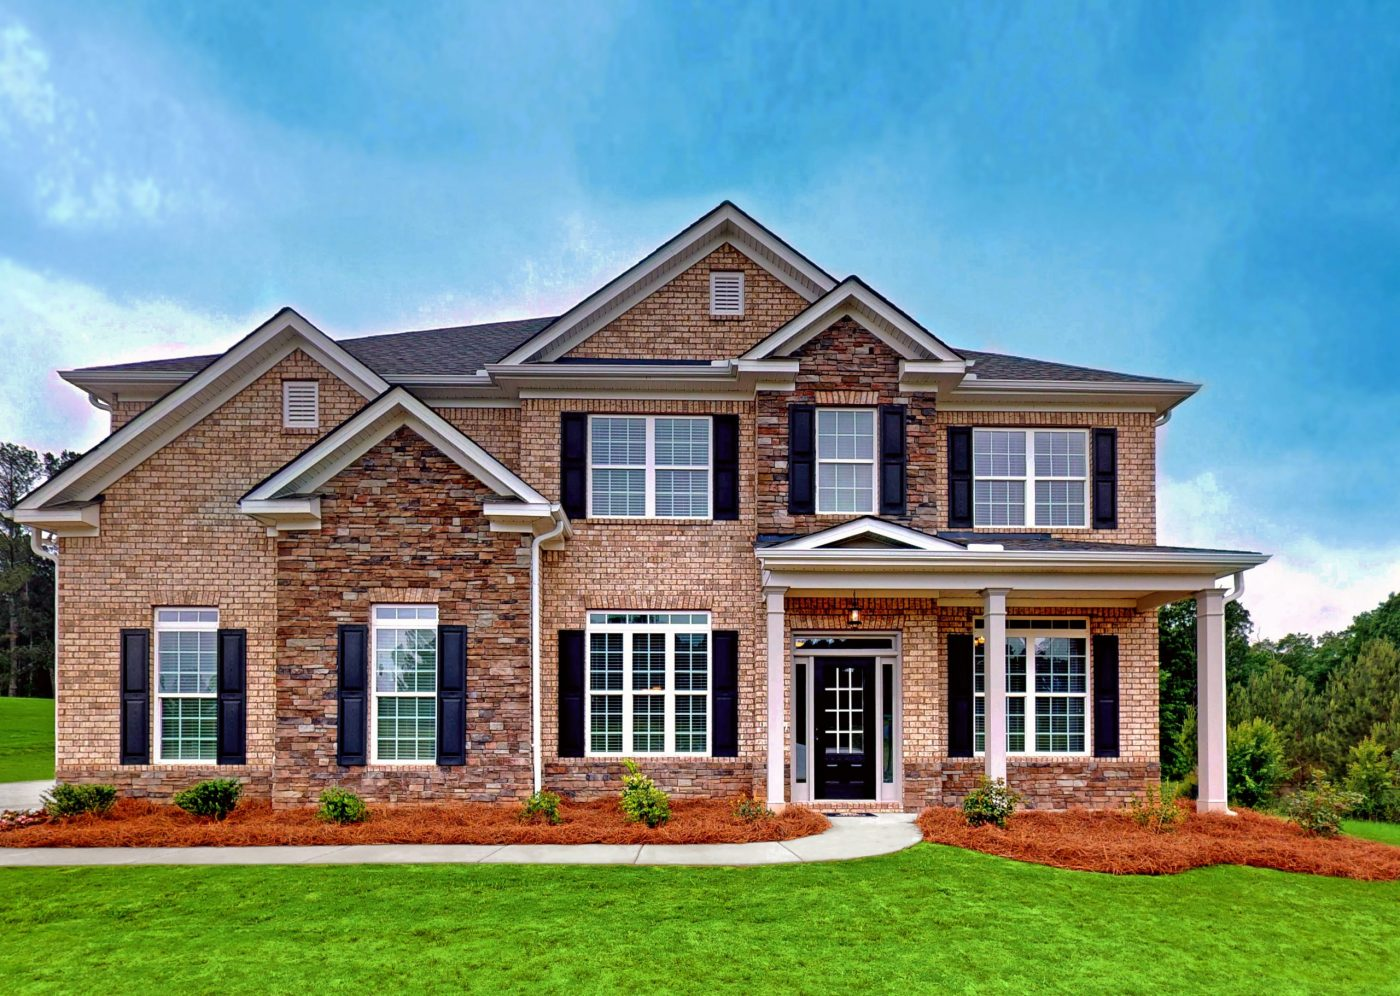 beautiful living in a new home in Adairsville from Silverstone Communities